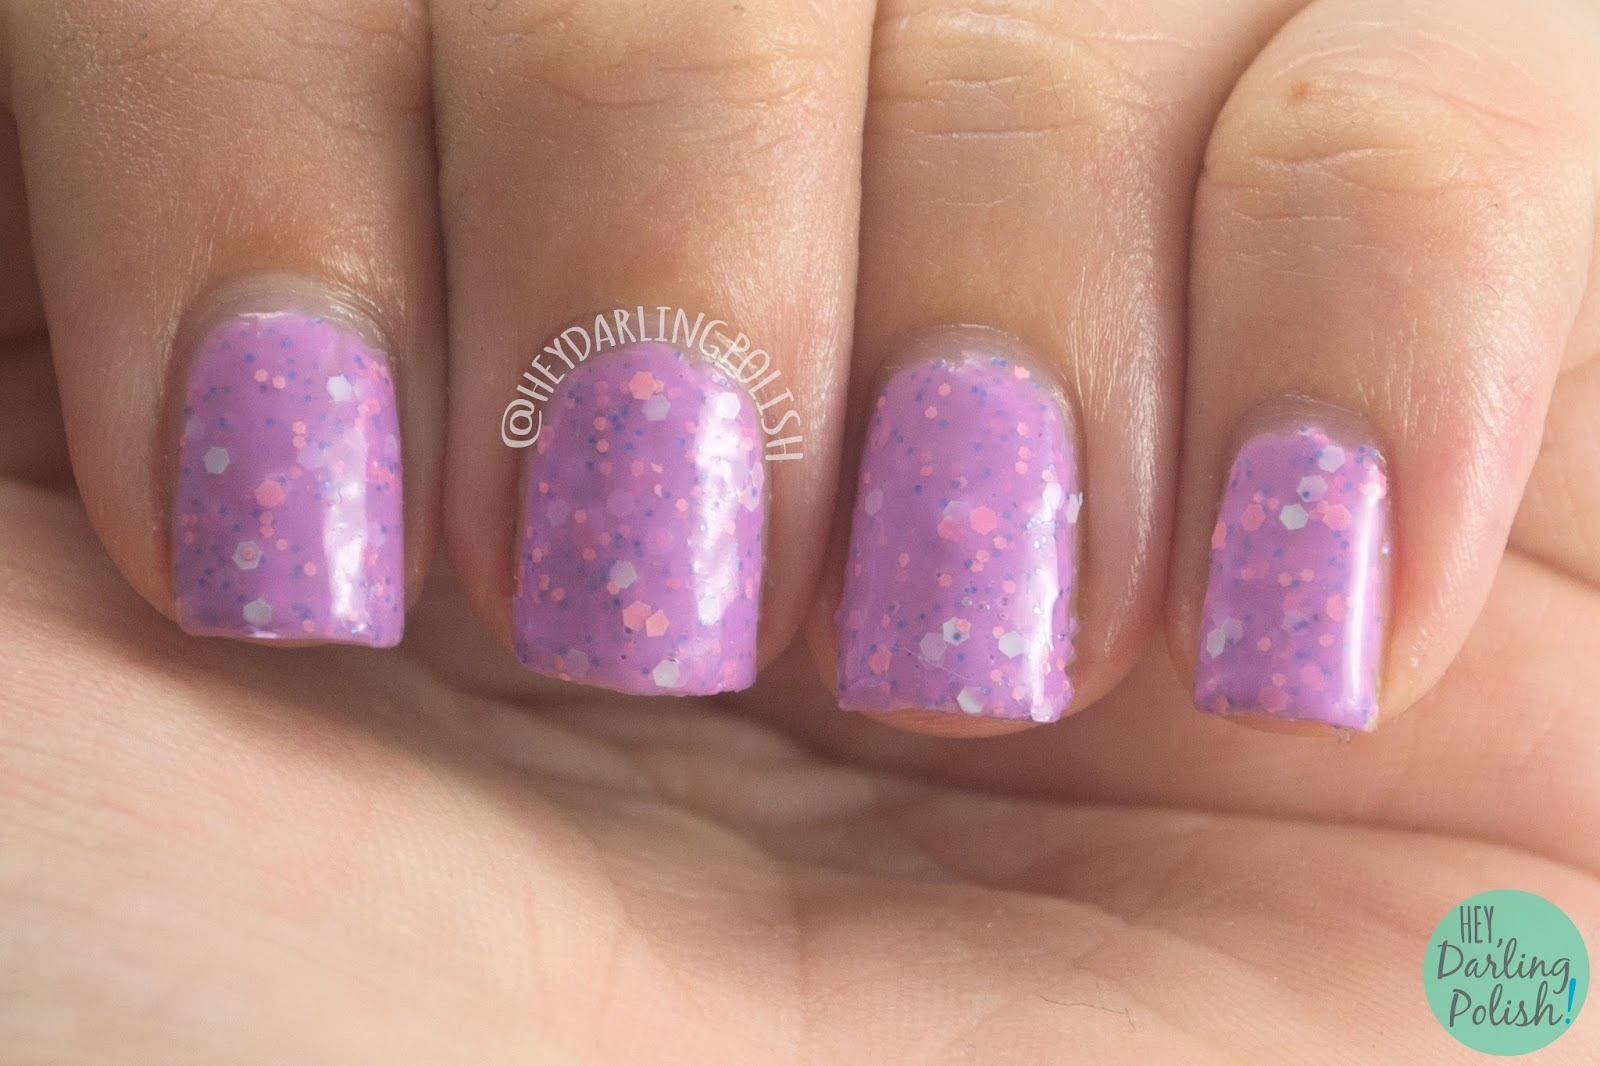 summer fling, thermal, purple, glitter, nails, nail polish, indie polish, indie nail polish, live life polished, hey darling polish, farewell summer,